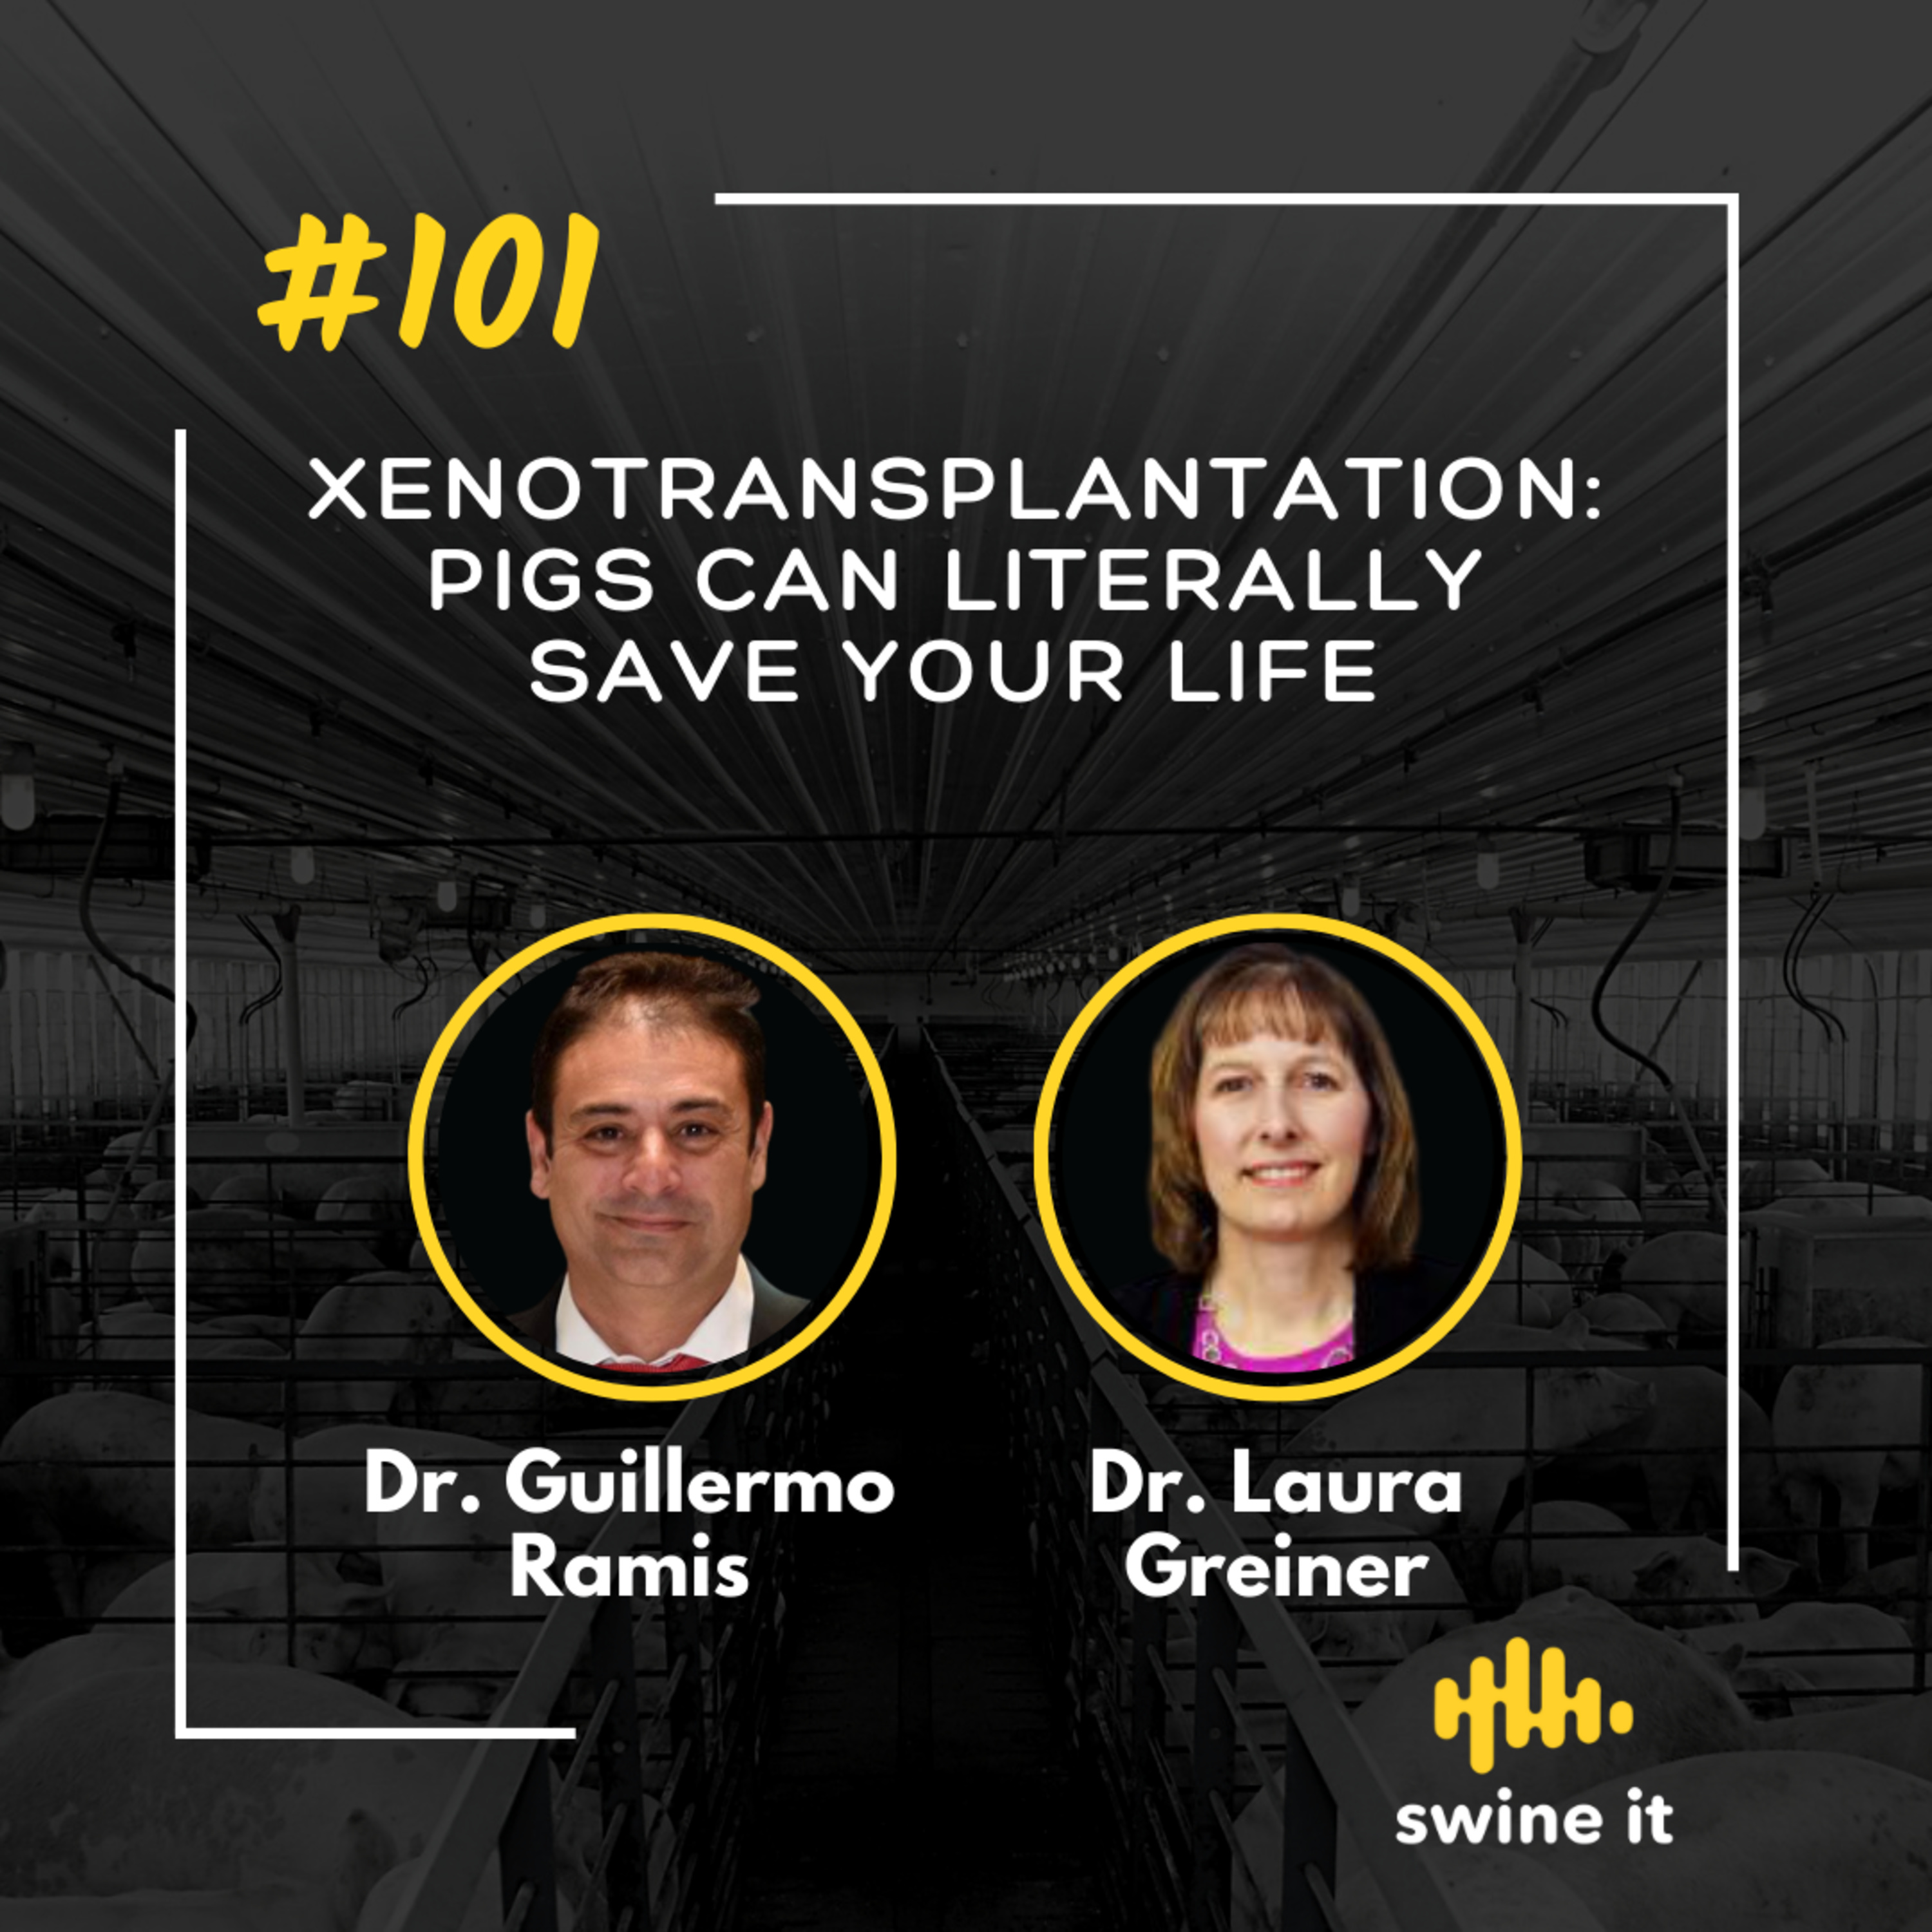 Xenotransplantation: pigs can literally save your life - Dr. Guillermo Ramis